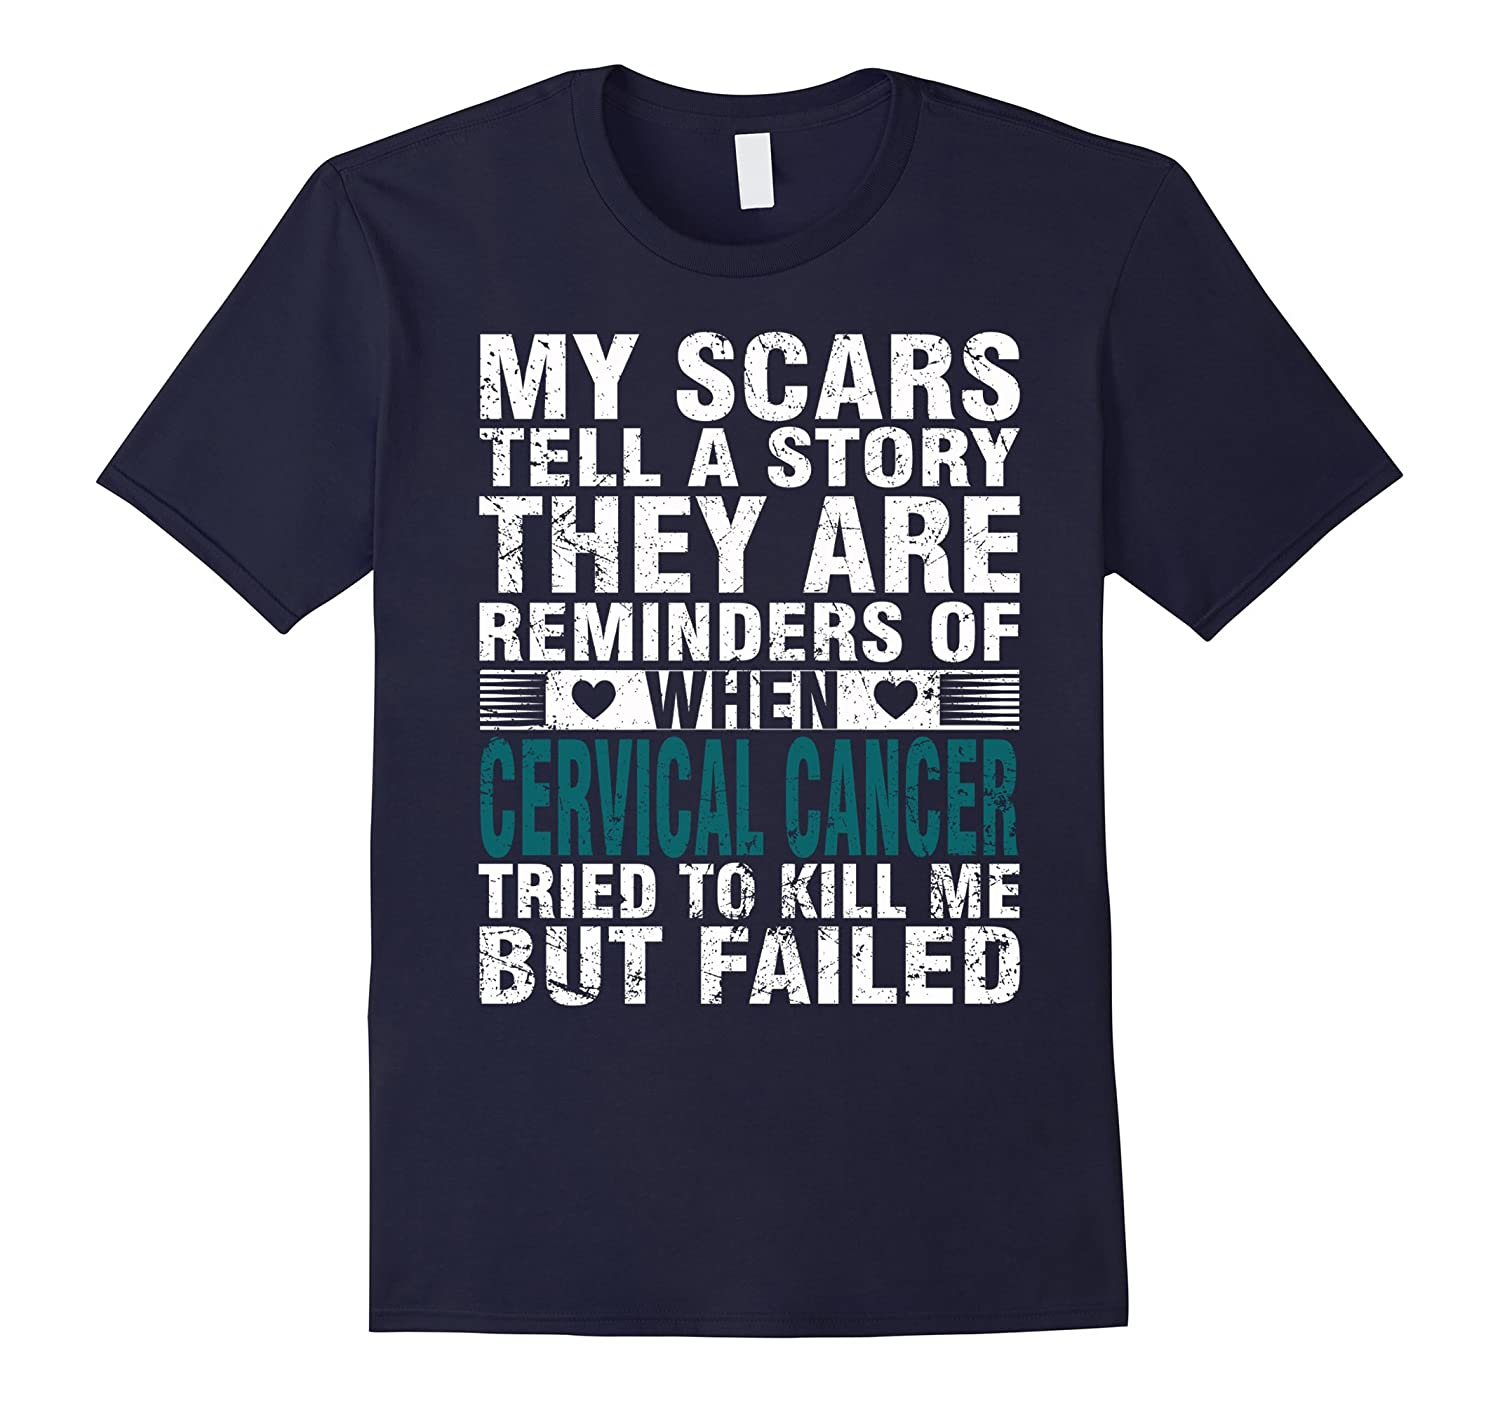 CERVICAL CANCER tried to kill me but failed t shirt-FL